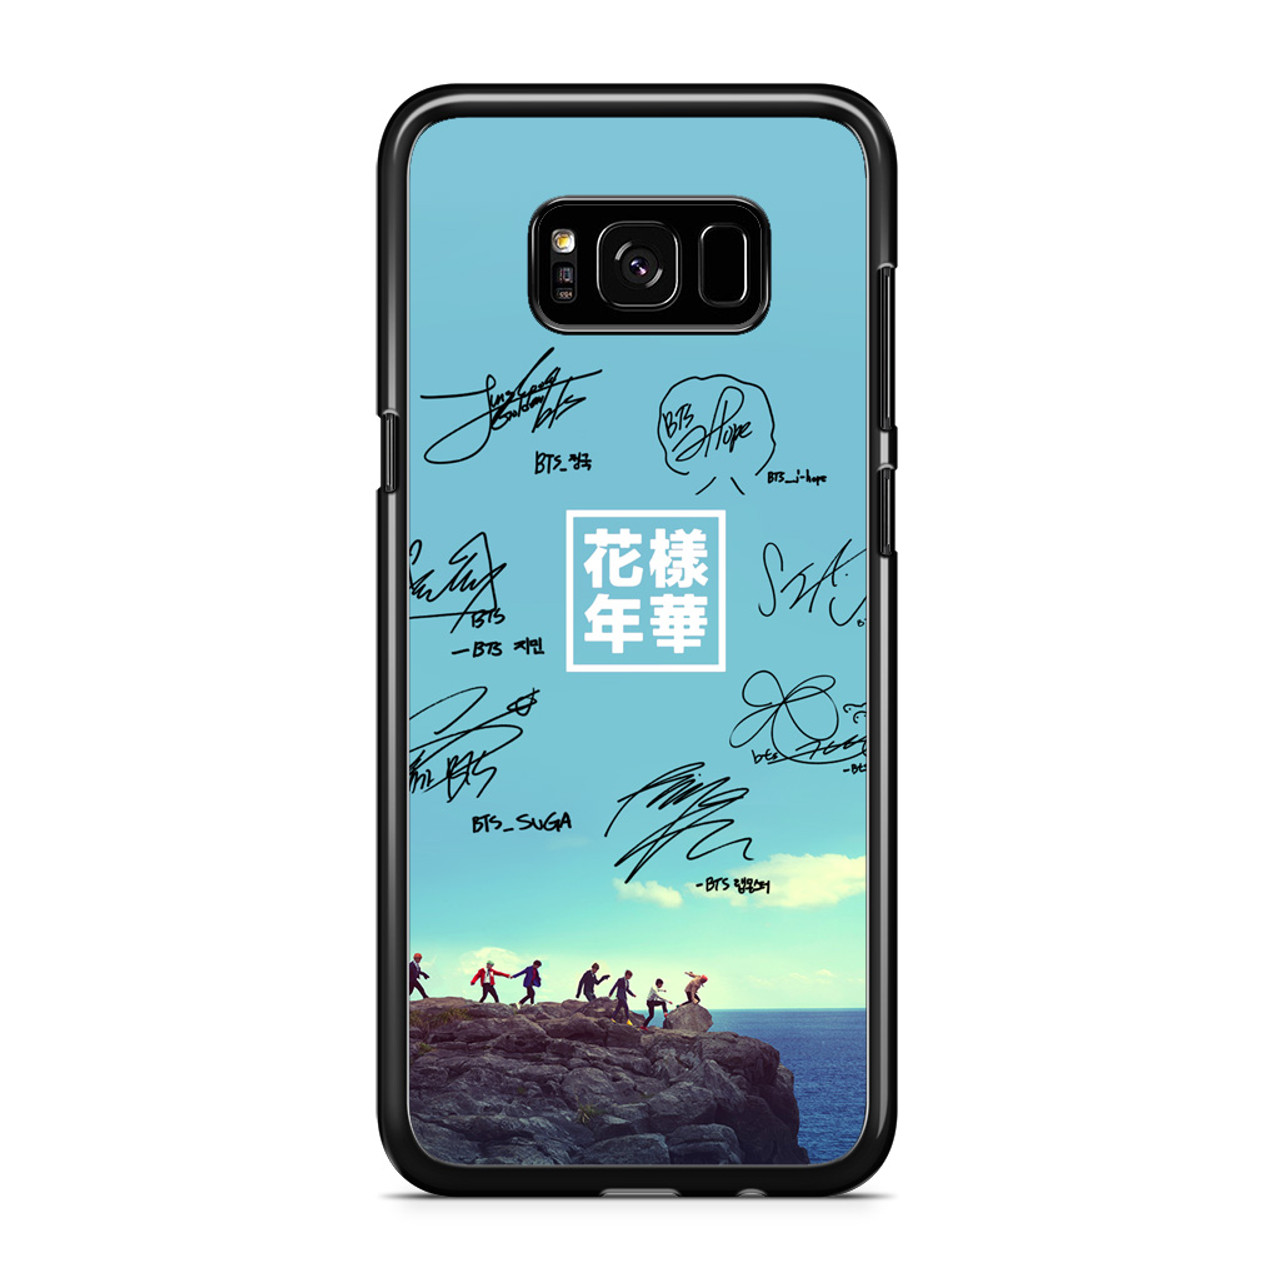 samsung galaxy s8 case teal